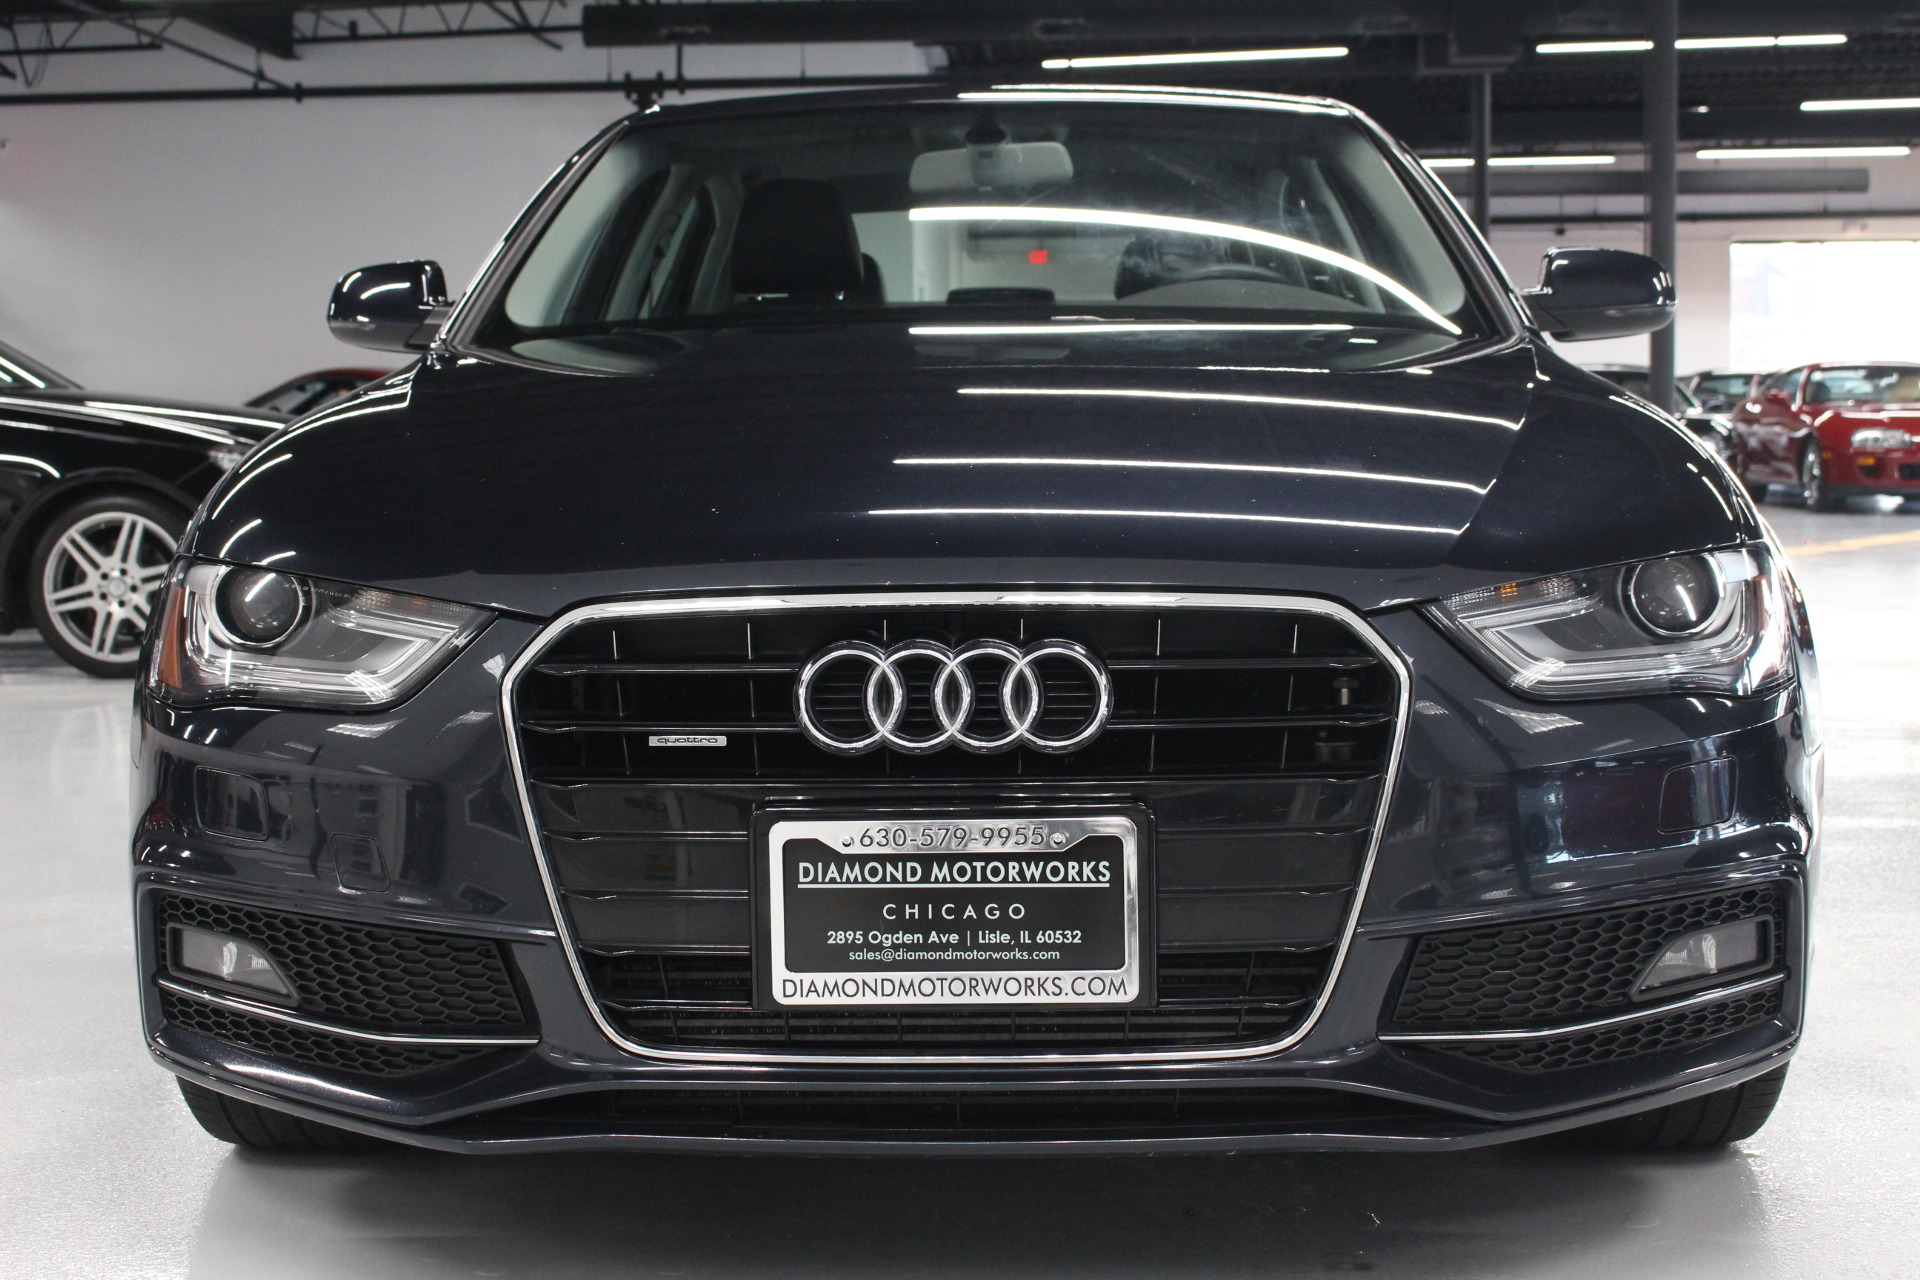 Used-2015-Audi-A4-4dr-Sedan-Manual-quattro-